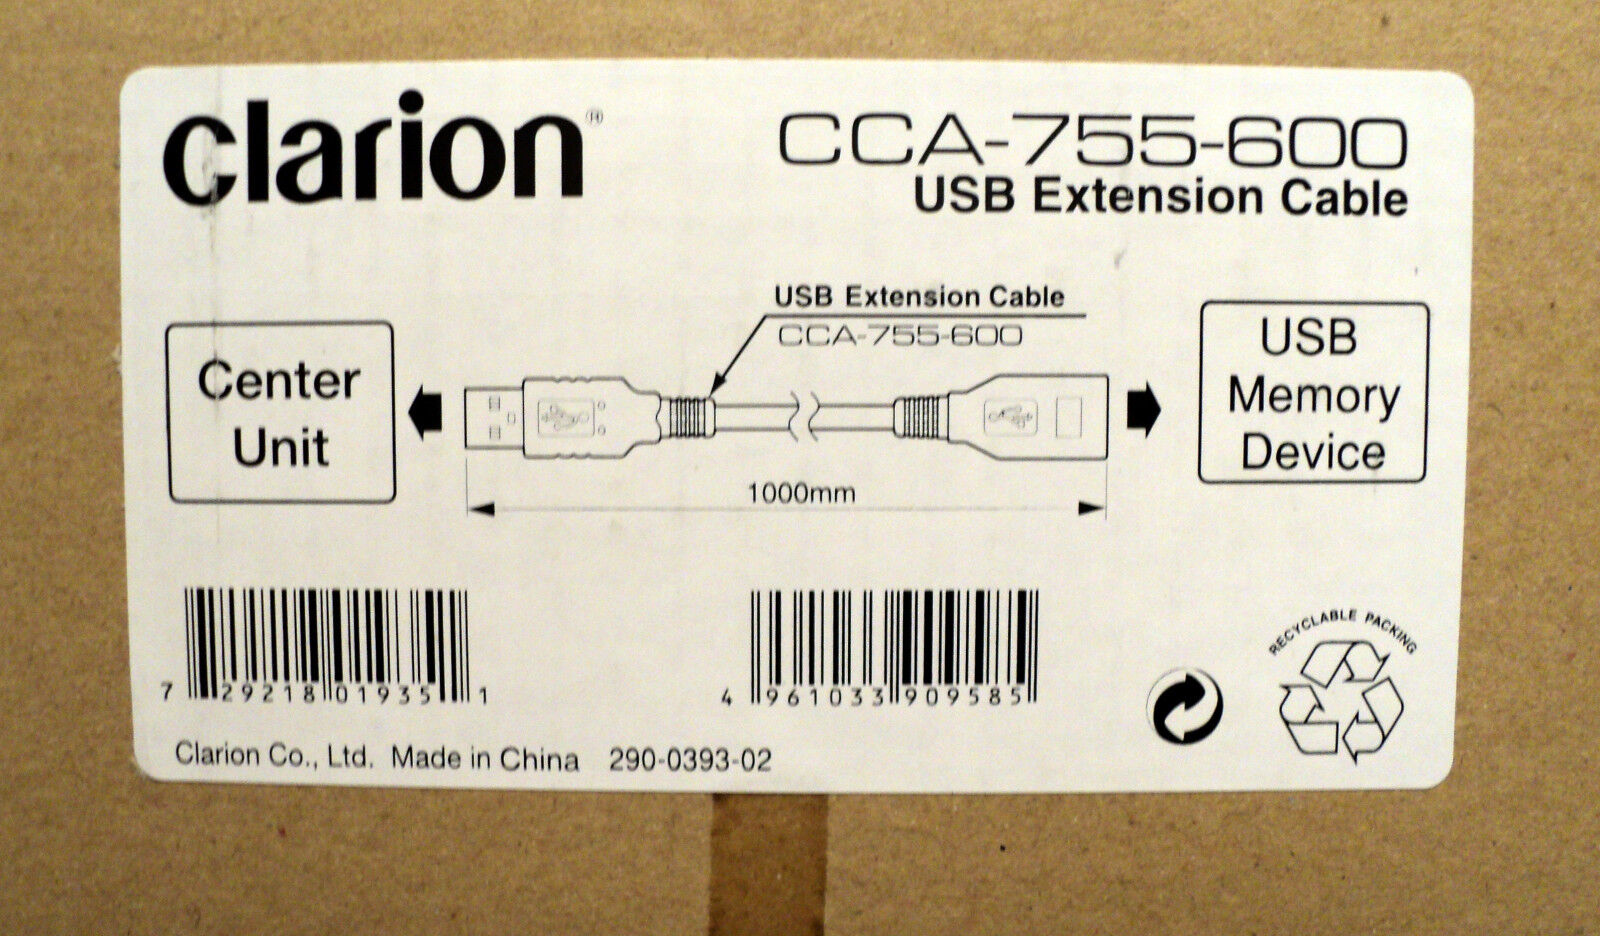 Clarion Cca-755-600 Usb Extension Cable, 3.25ft. (2m)